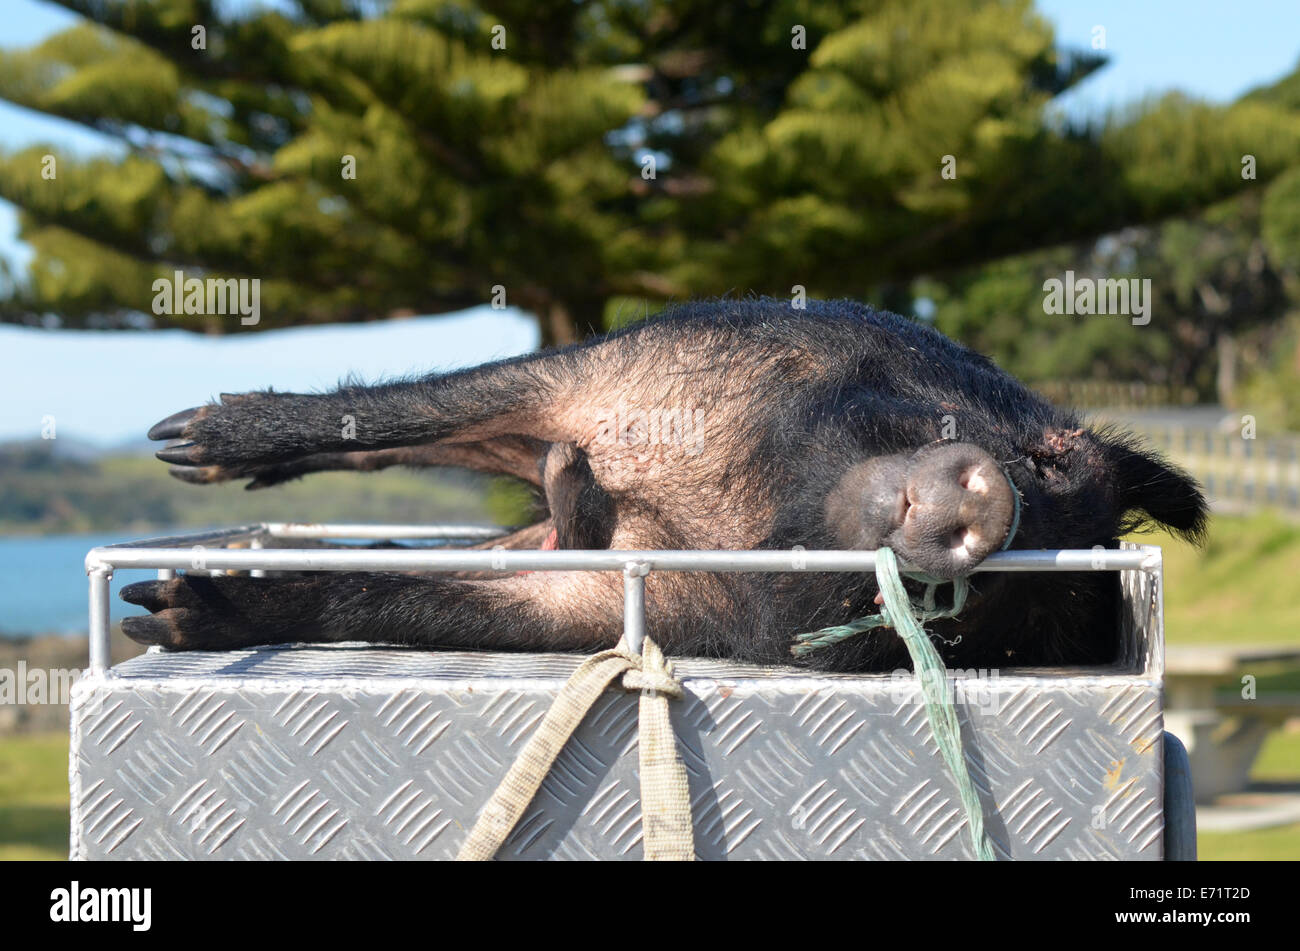 TAIPA, NZL - SEP 03 2014:Hunted Wild Pig.Wild pig hunting in New Zealand is a significant sport with over 20,000 - Stock Image